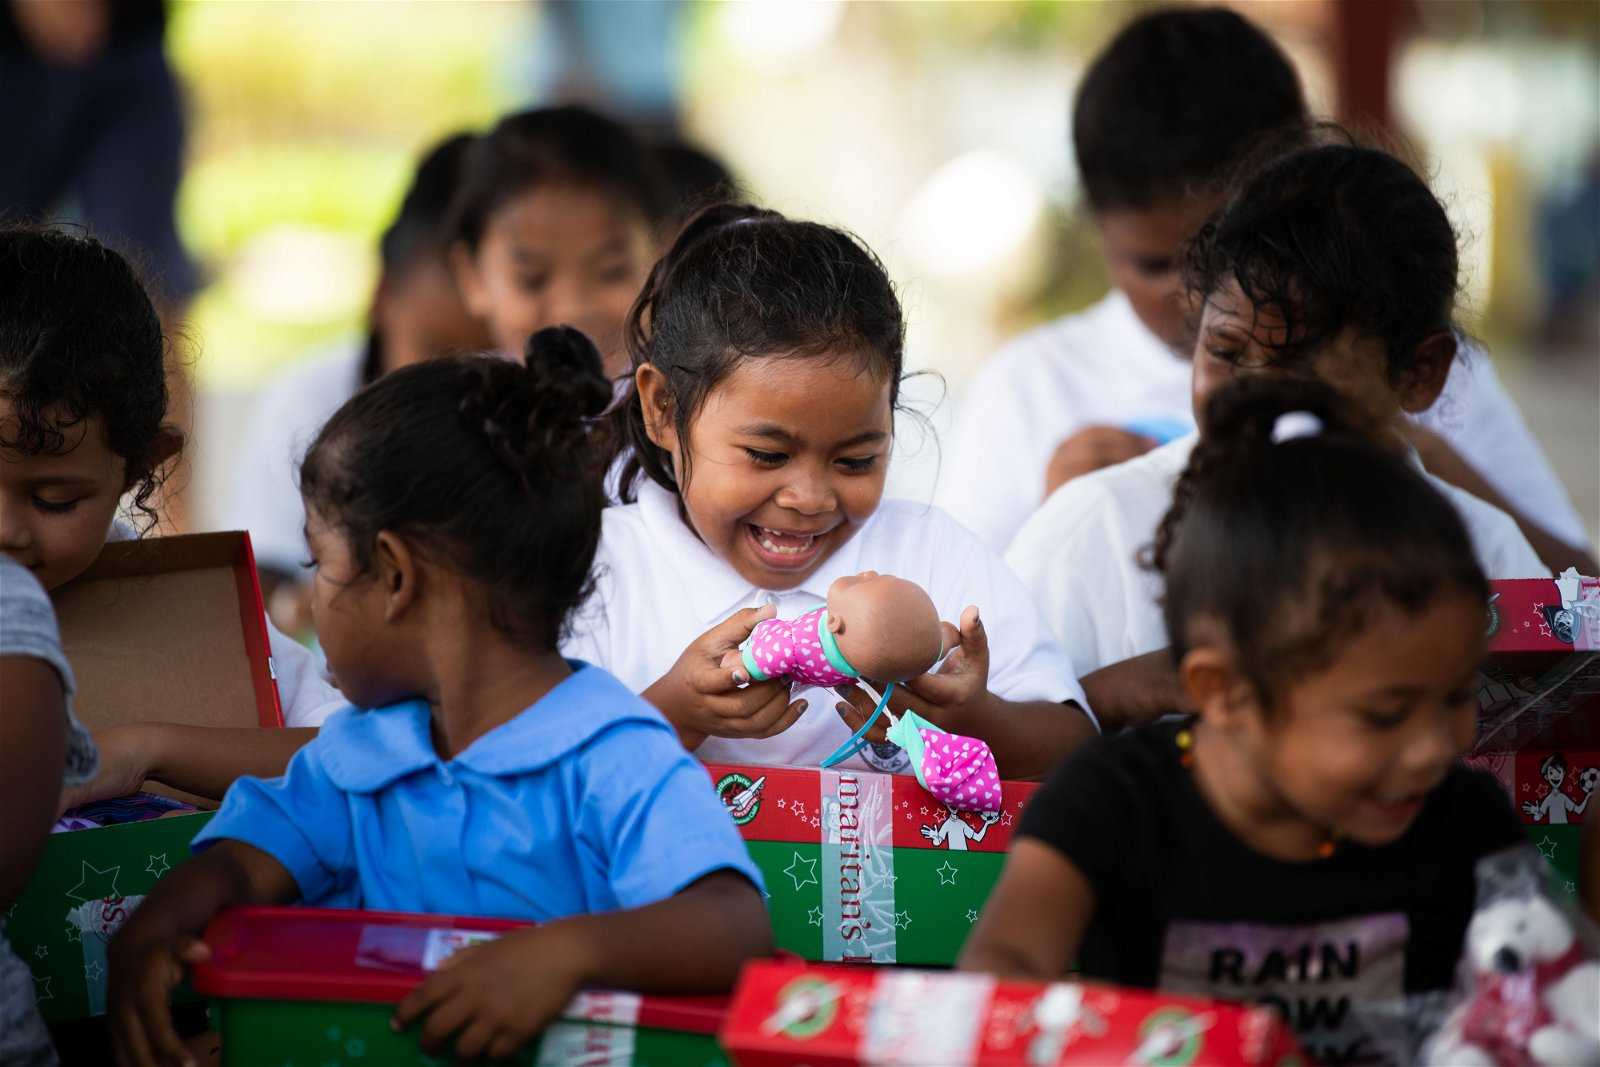 JOY ERUPTS IN CHILDREN AT PELELIU ELEMENTARY SCHOOL WHEN THEY RECEIVE THEIR OPERATION CHRISTMAS CHILD SHOEBOX GIFTS.